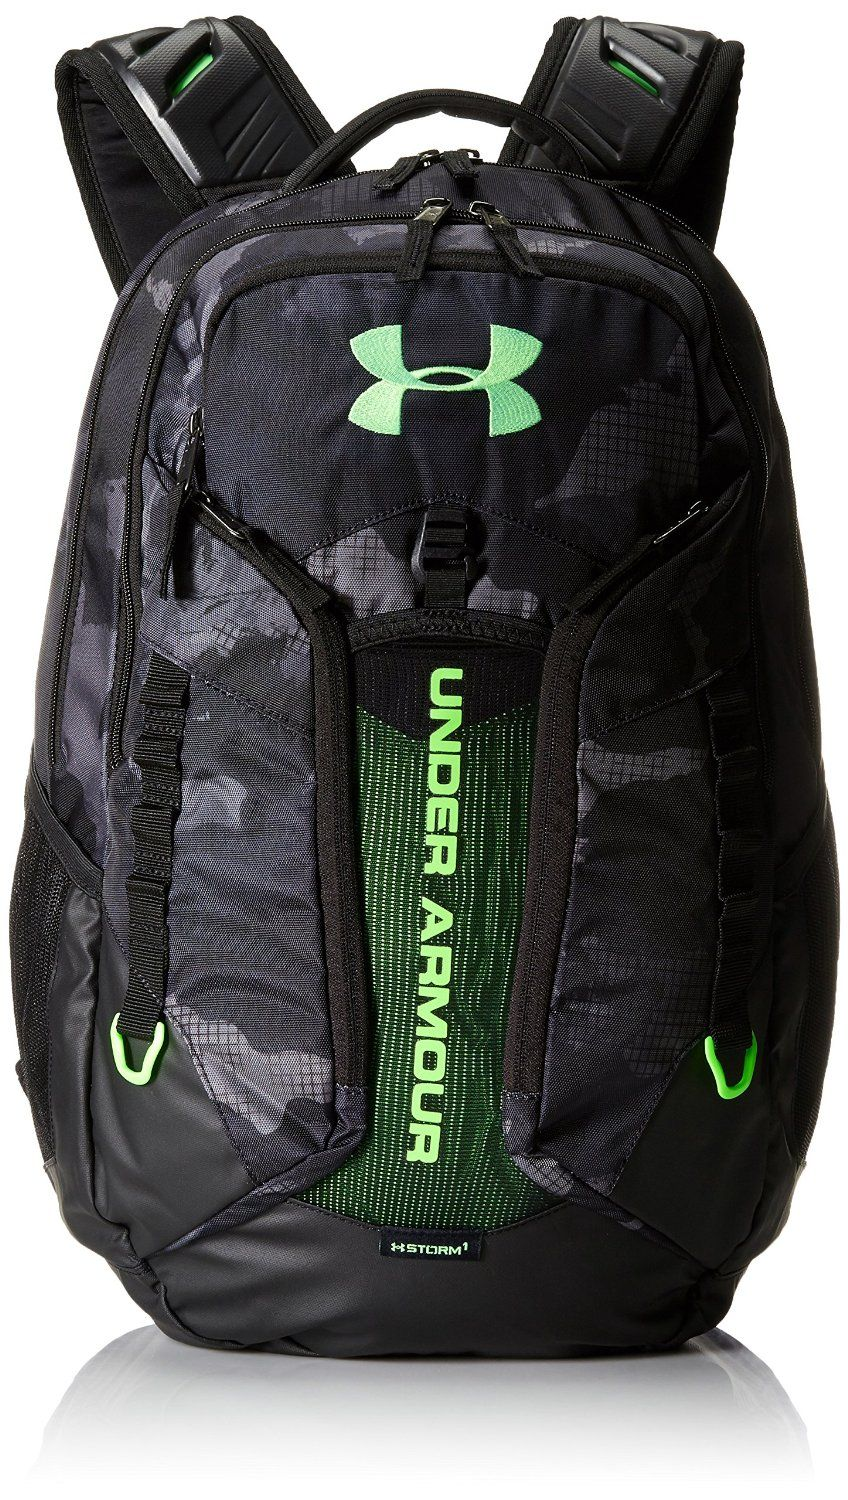 Under Armour Storm Contender Backpack     Find out more details by clicking  the image   Backpacking backpack c2d723598699f